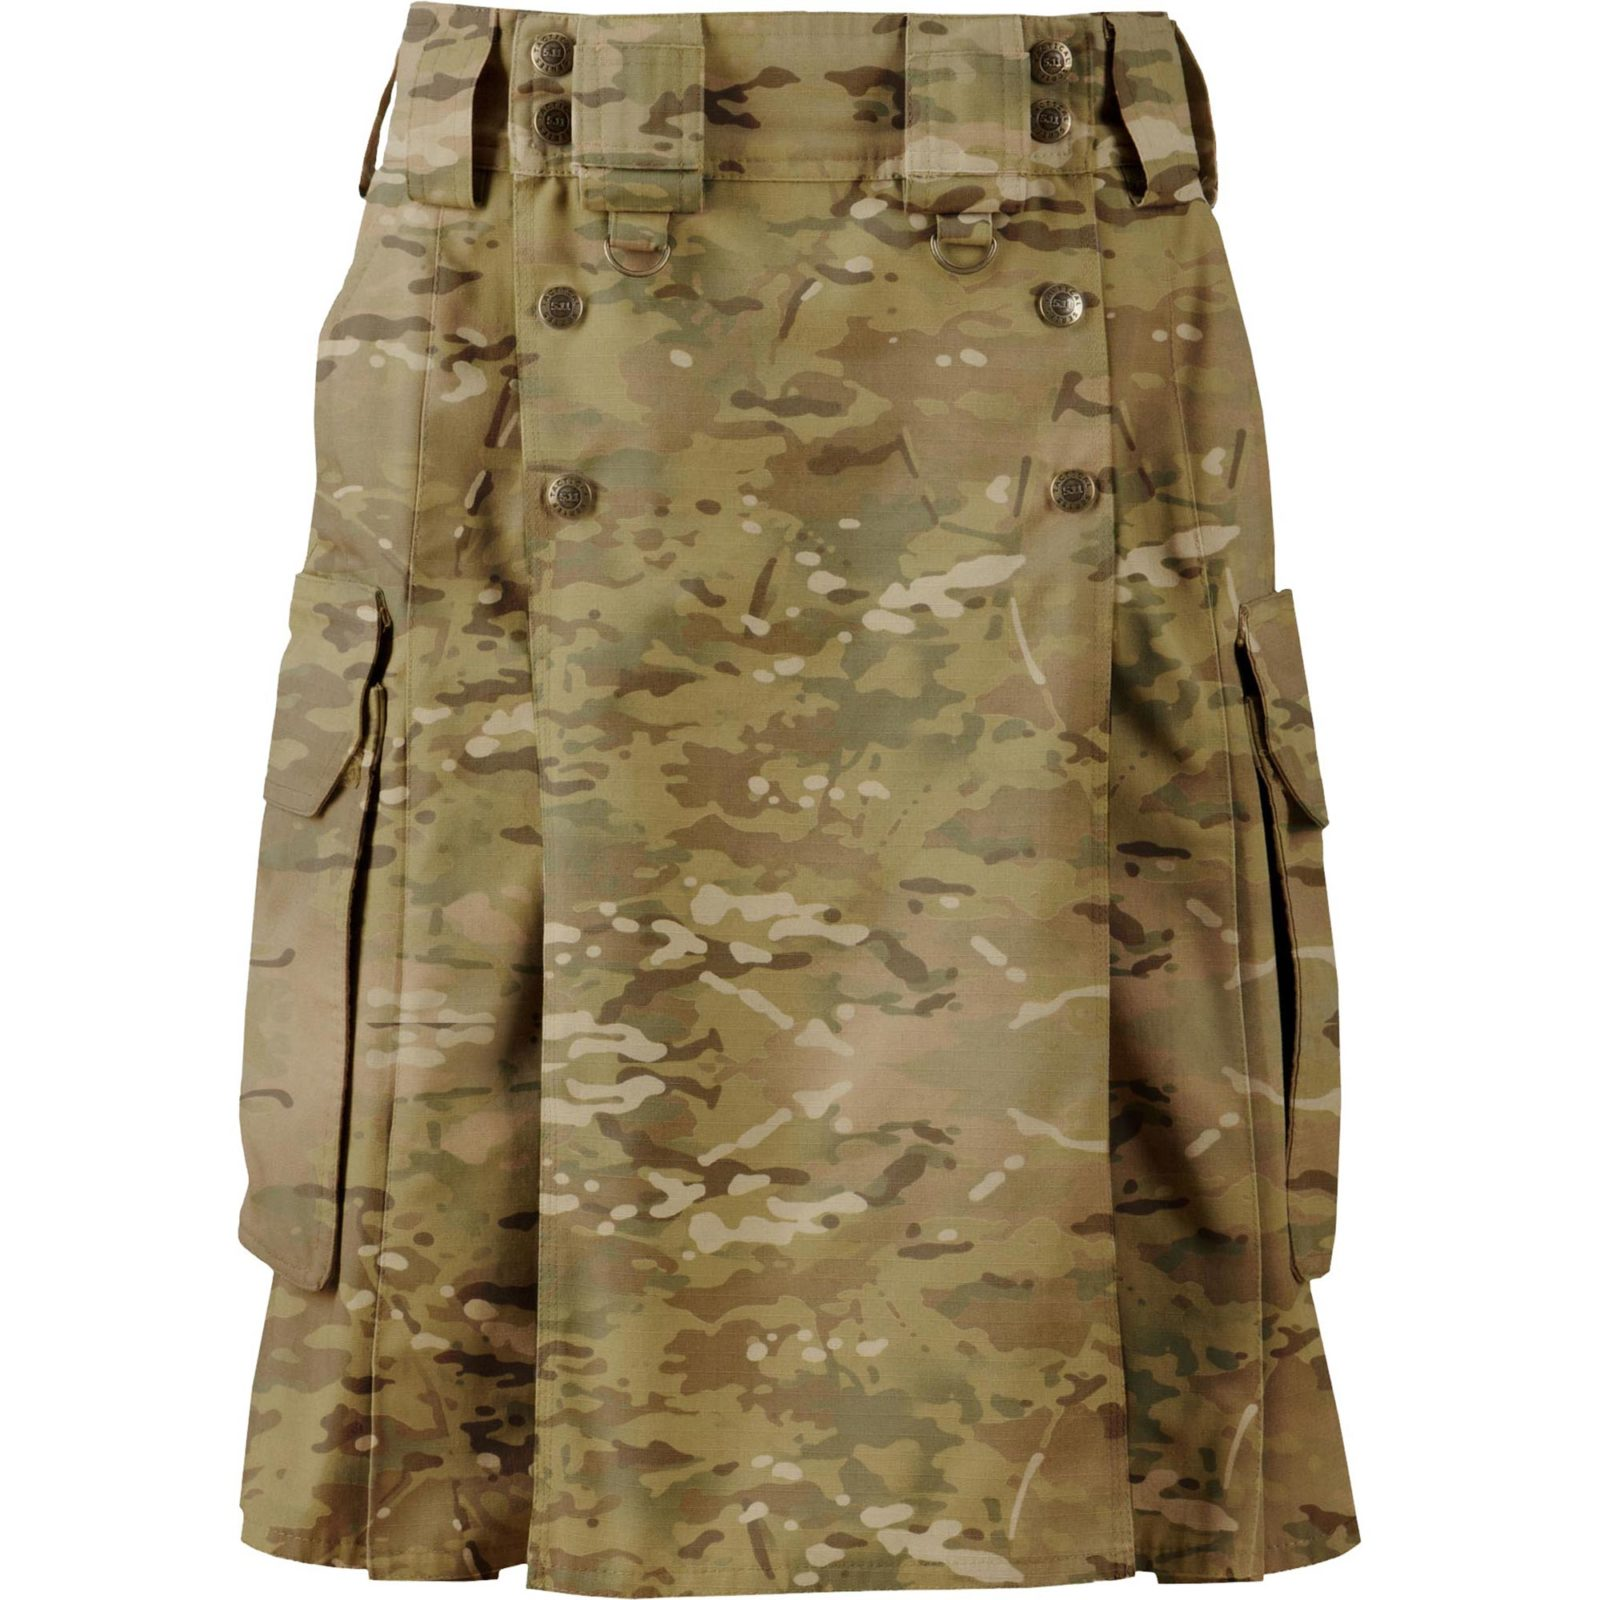 Camouflage Tactical Duty Kilt